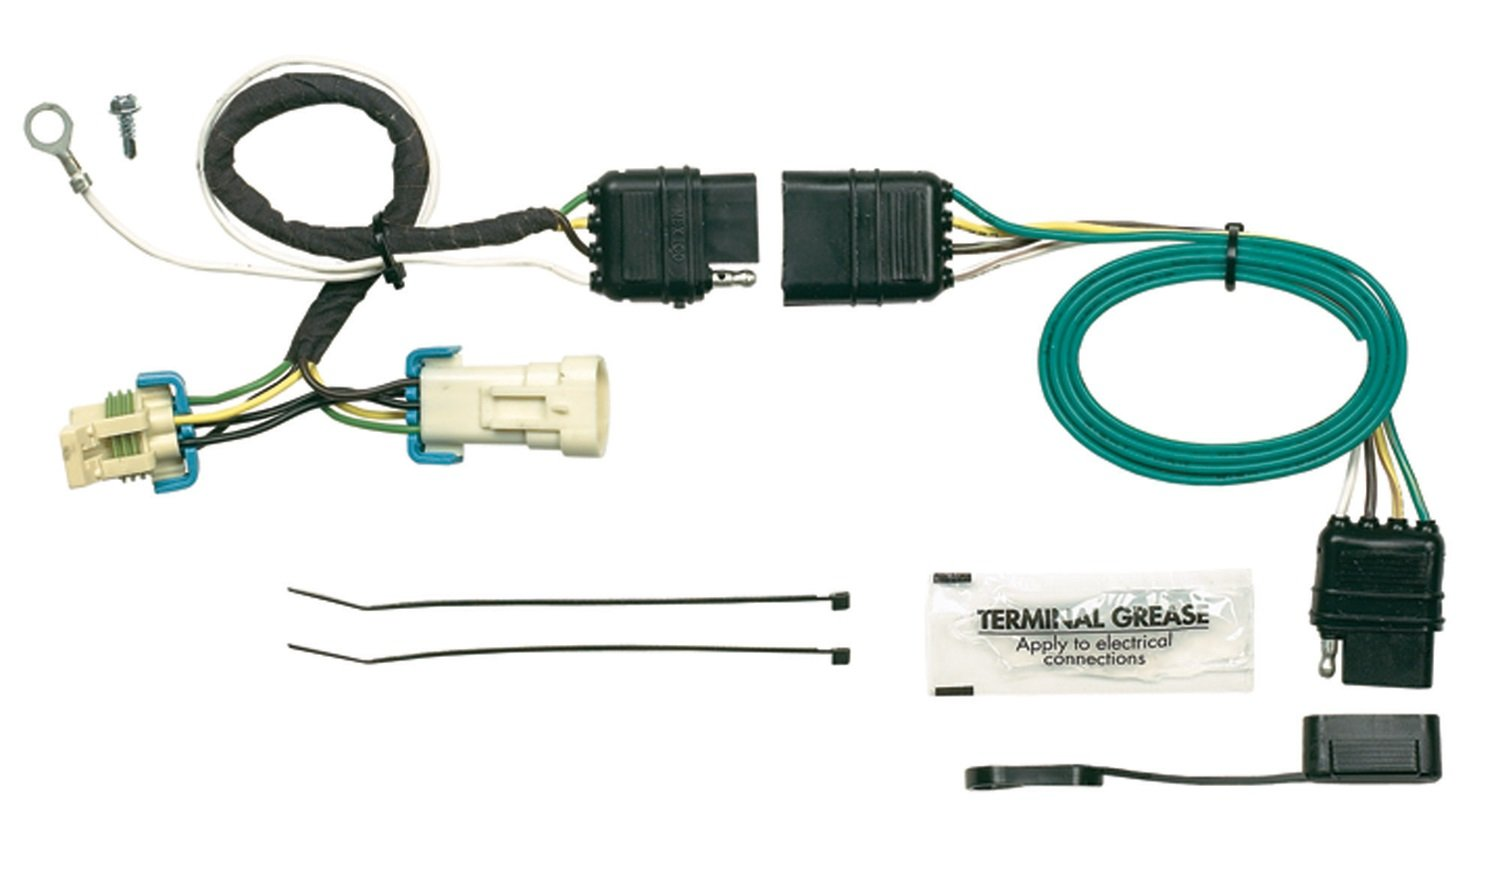 618X6OJbTkL._SL1500_ amazon com hopkins 41135 plug in simple vehicle wiring kit hoppy wiring harness at crackthecode.co